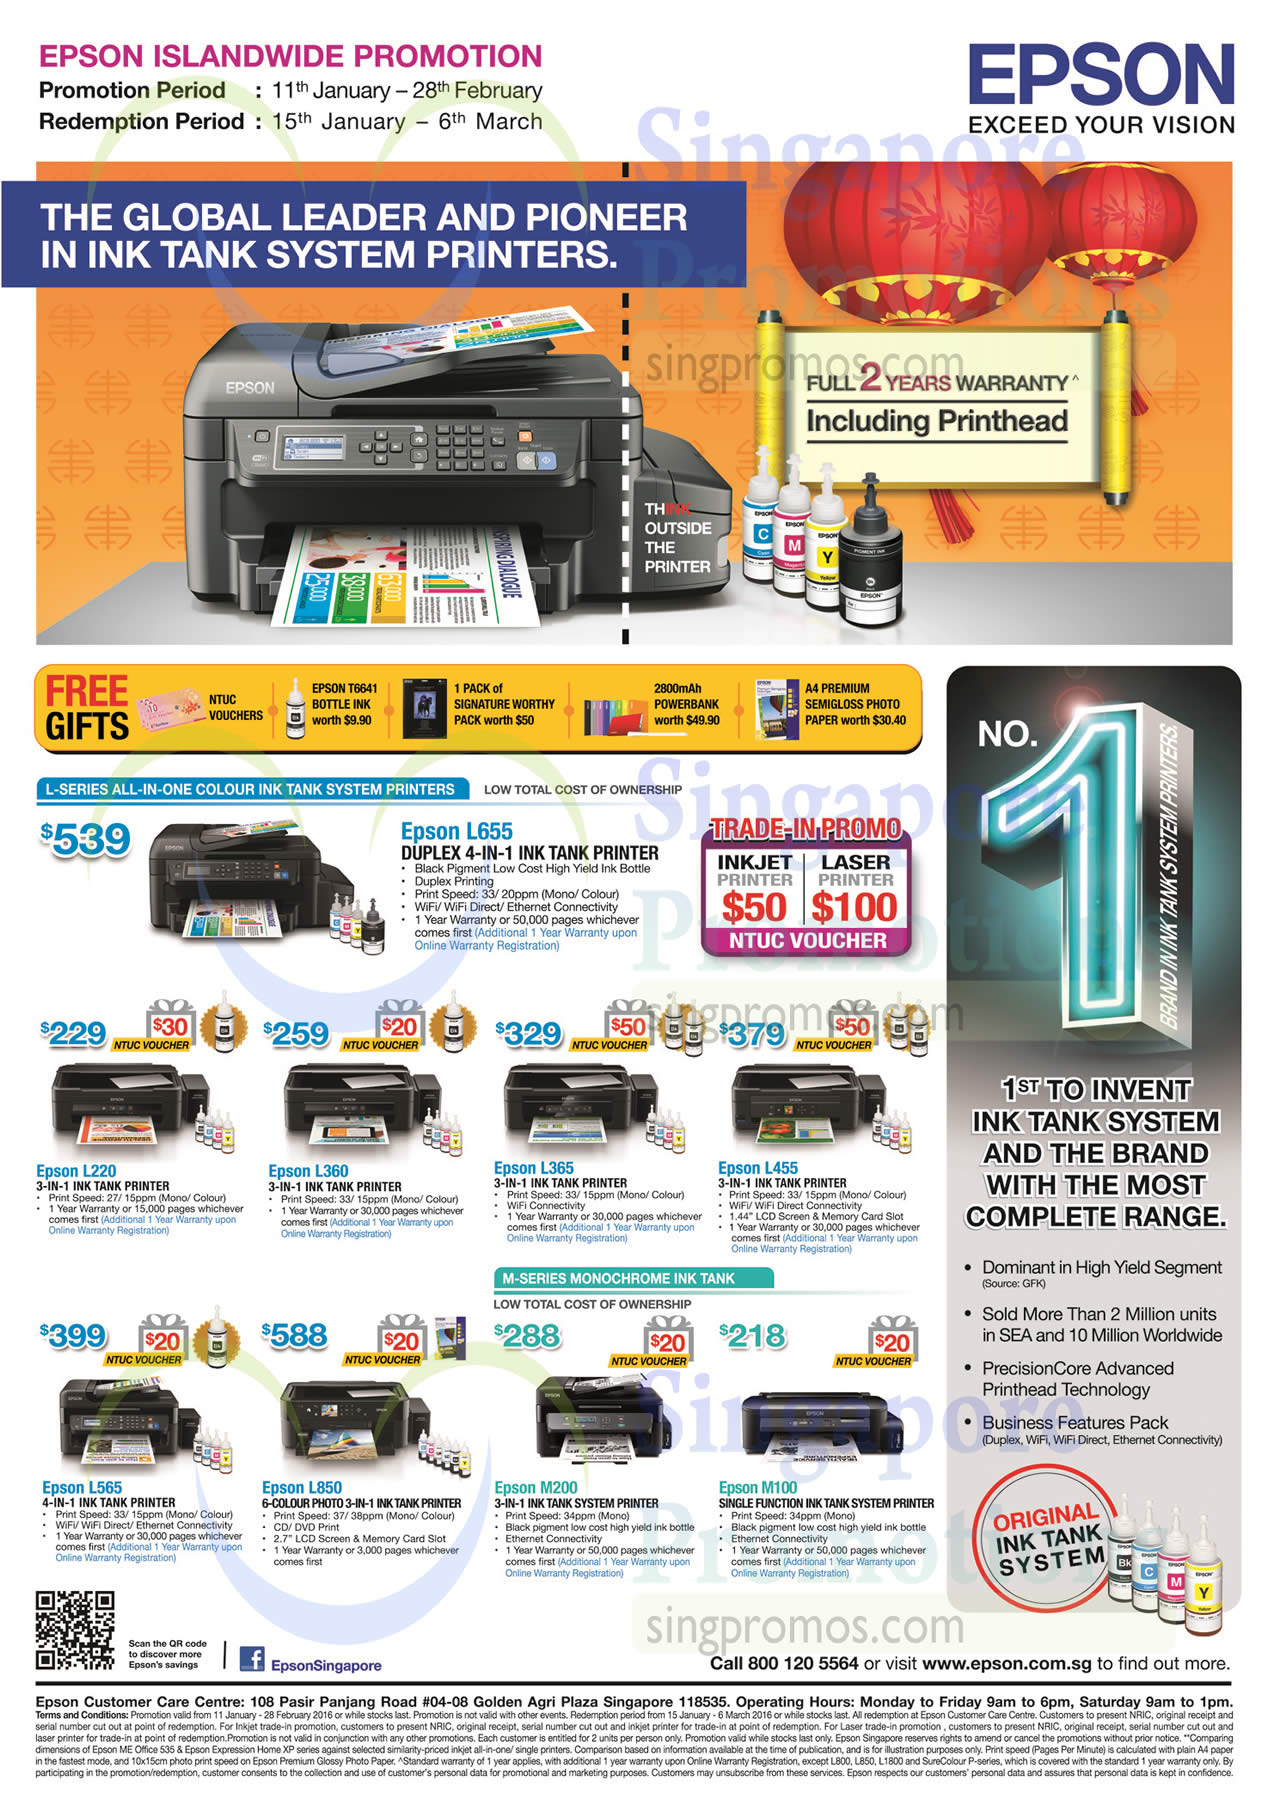 List Of Epson L1800 Printer Related Sales Deals Promotions News Printers Scanners Islandwide Promo Offers 12 Jan 28 Feb 2016